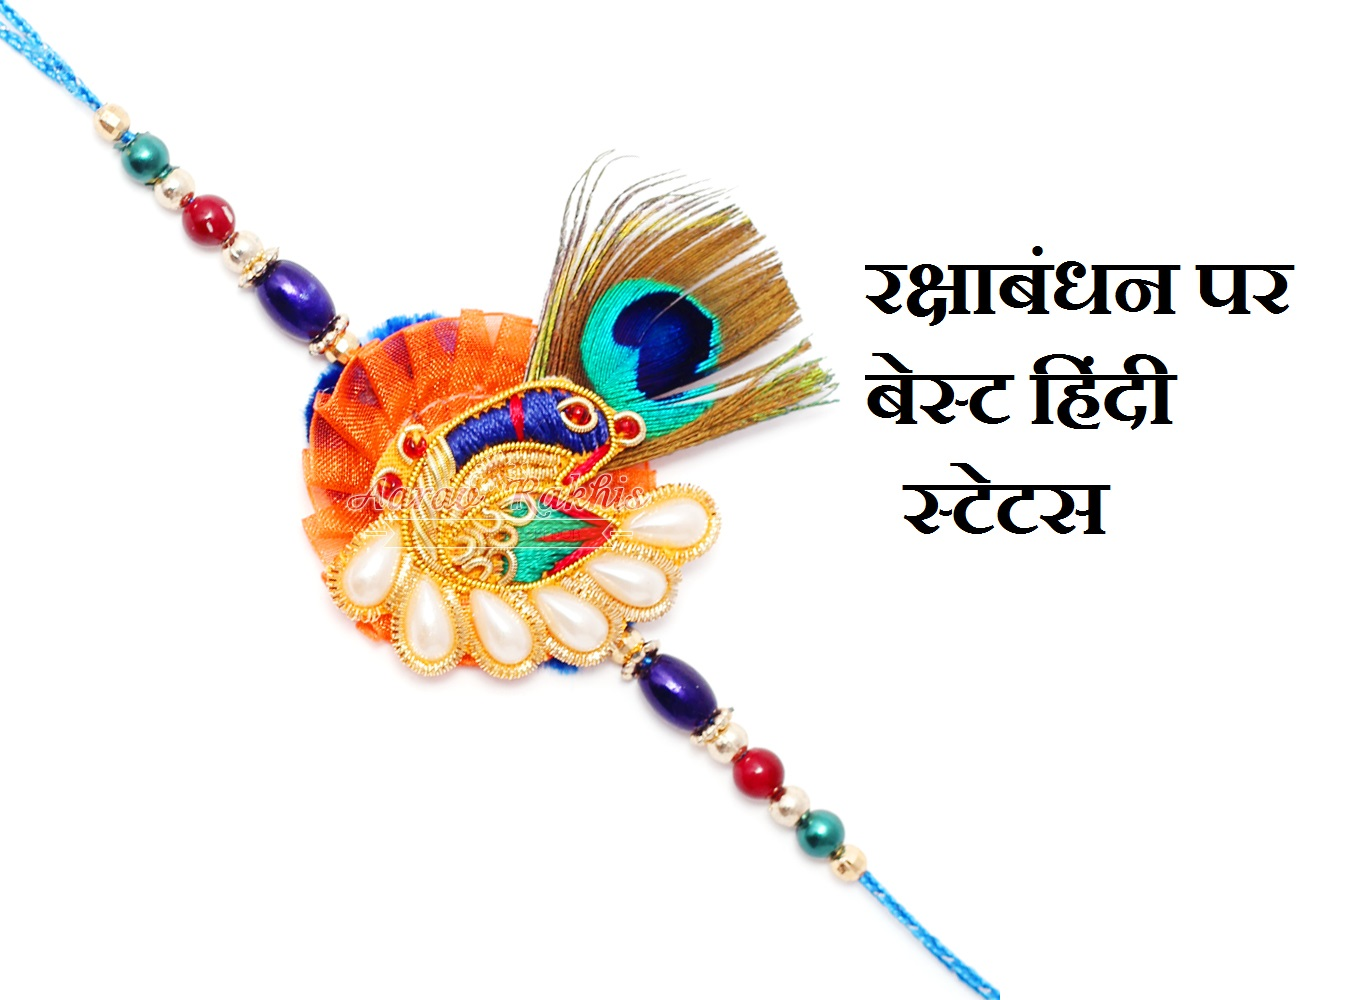 रक्षाबंधन पर बेस्ट हिंदी स्टेटस, Rakshabandhan Status Quotes In Hindi, rakshabandhan par status, hindi status on rakshabandhan, rakshabandhan in hindi